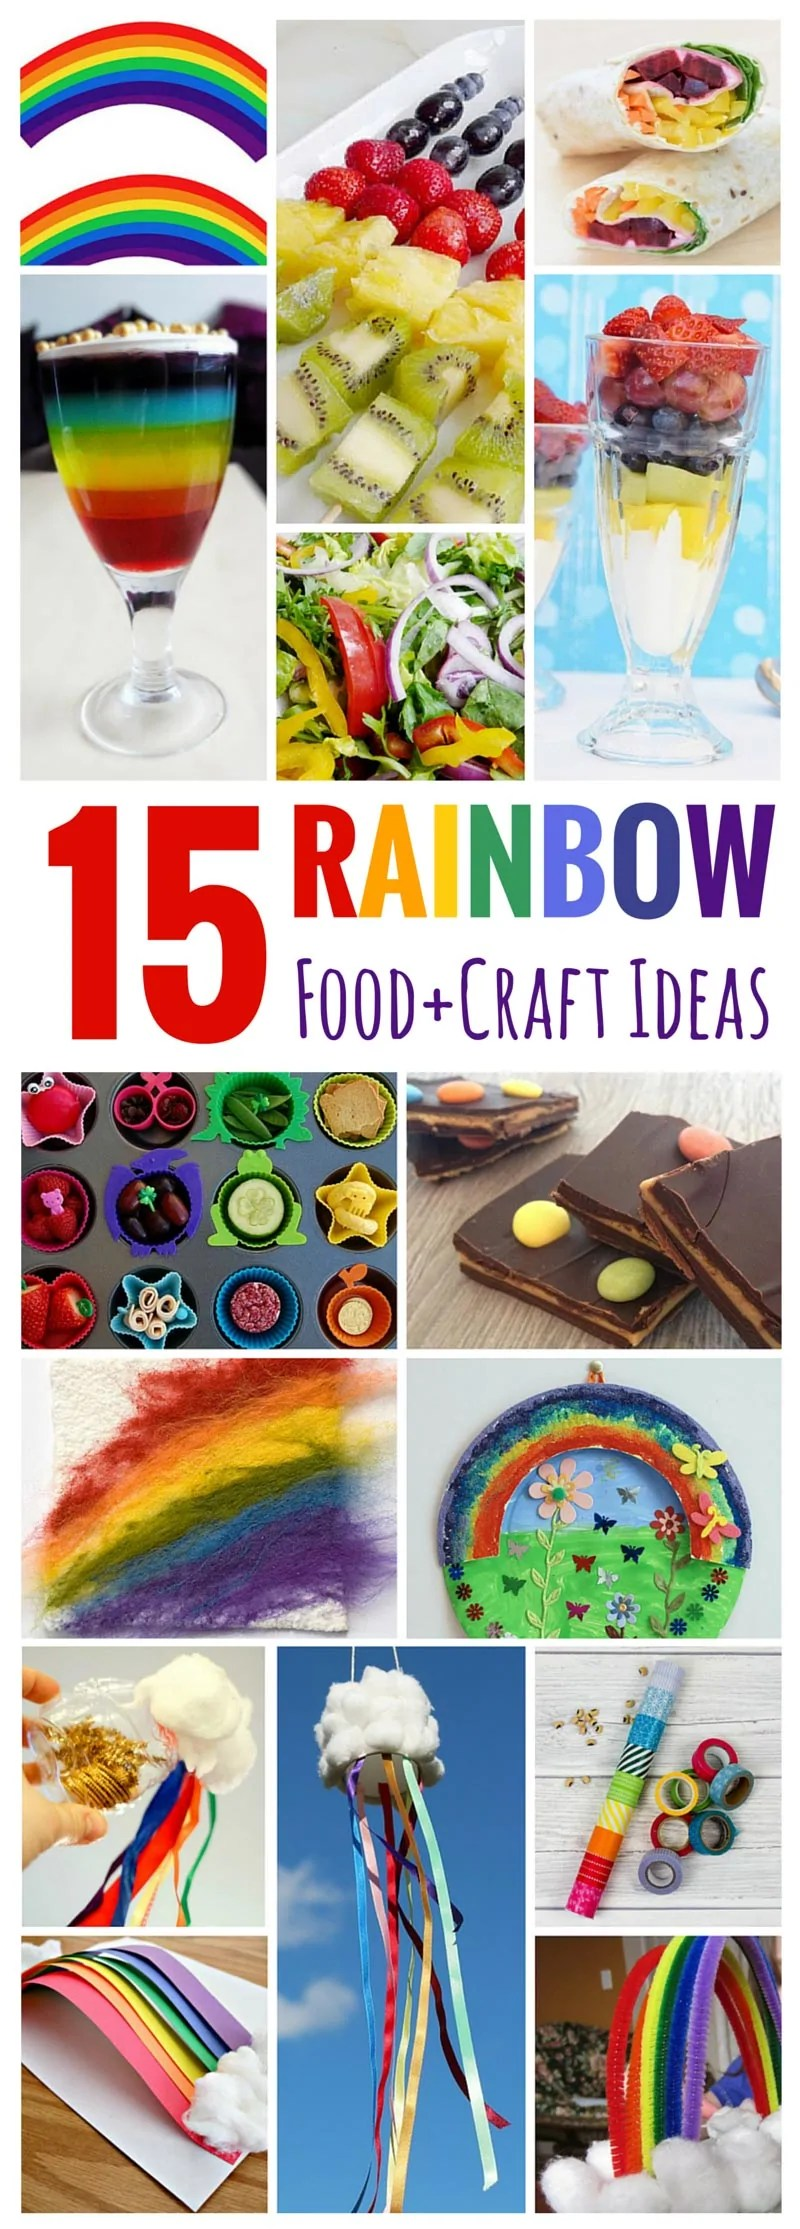 15 Rainbow Food + Craft Ideas - these are great for any time of the year, and for St. Patrick's Day!